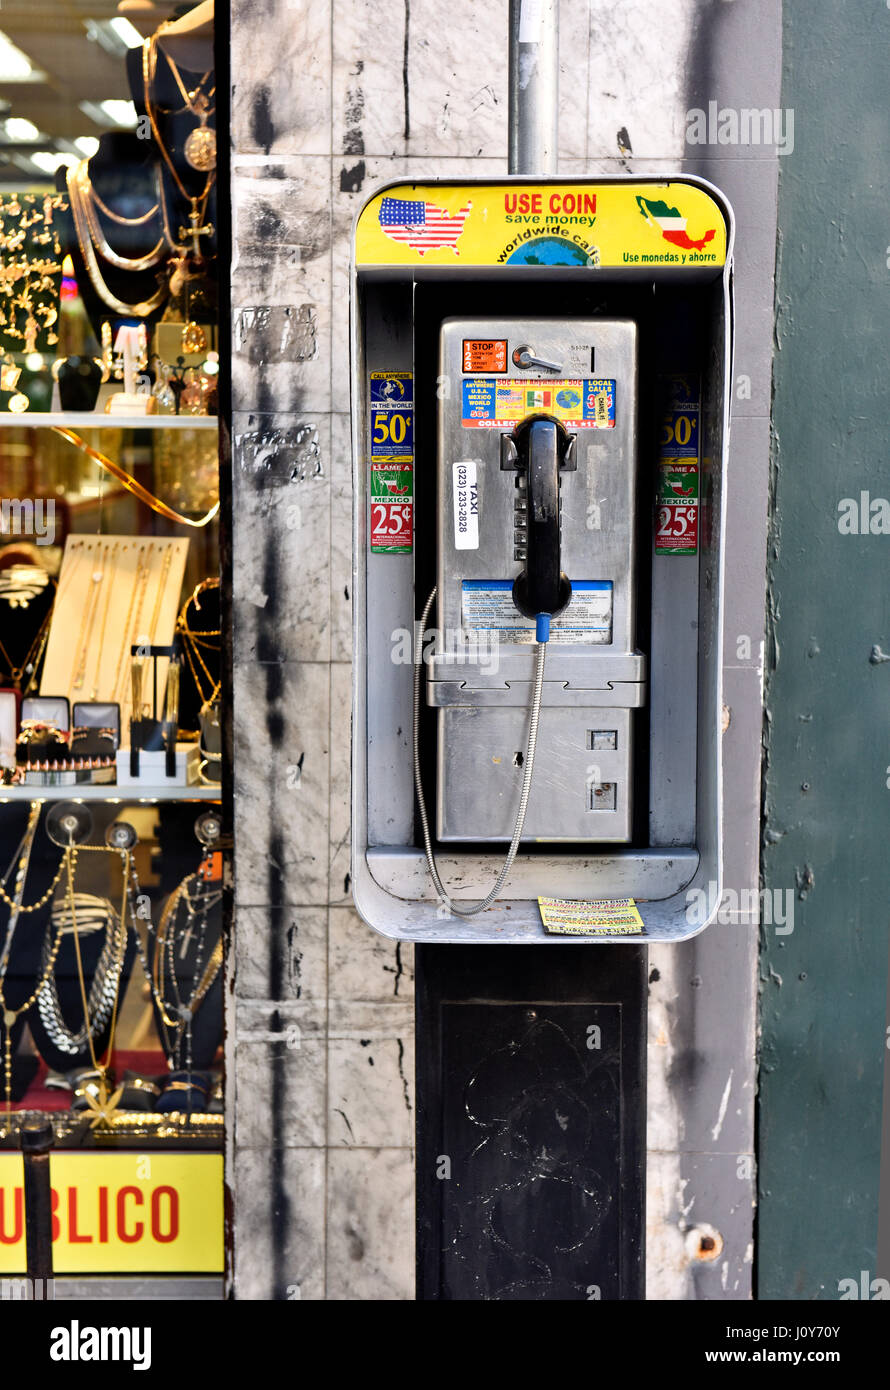 A Payphone in downtown Los Angeles California Stock Photo